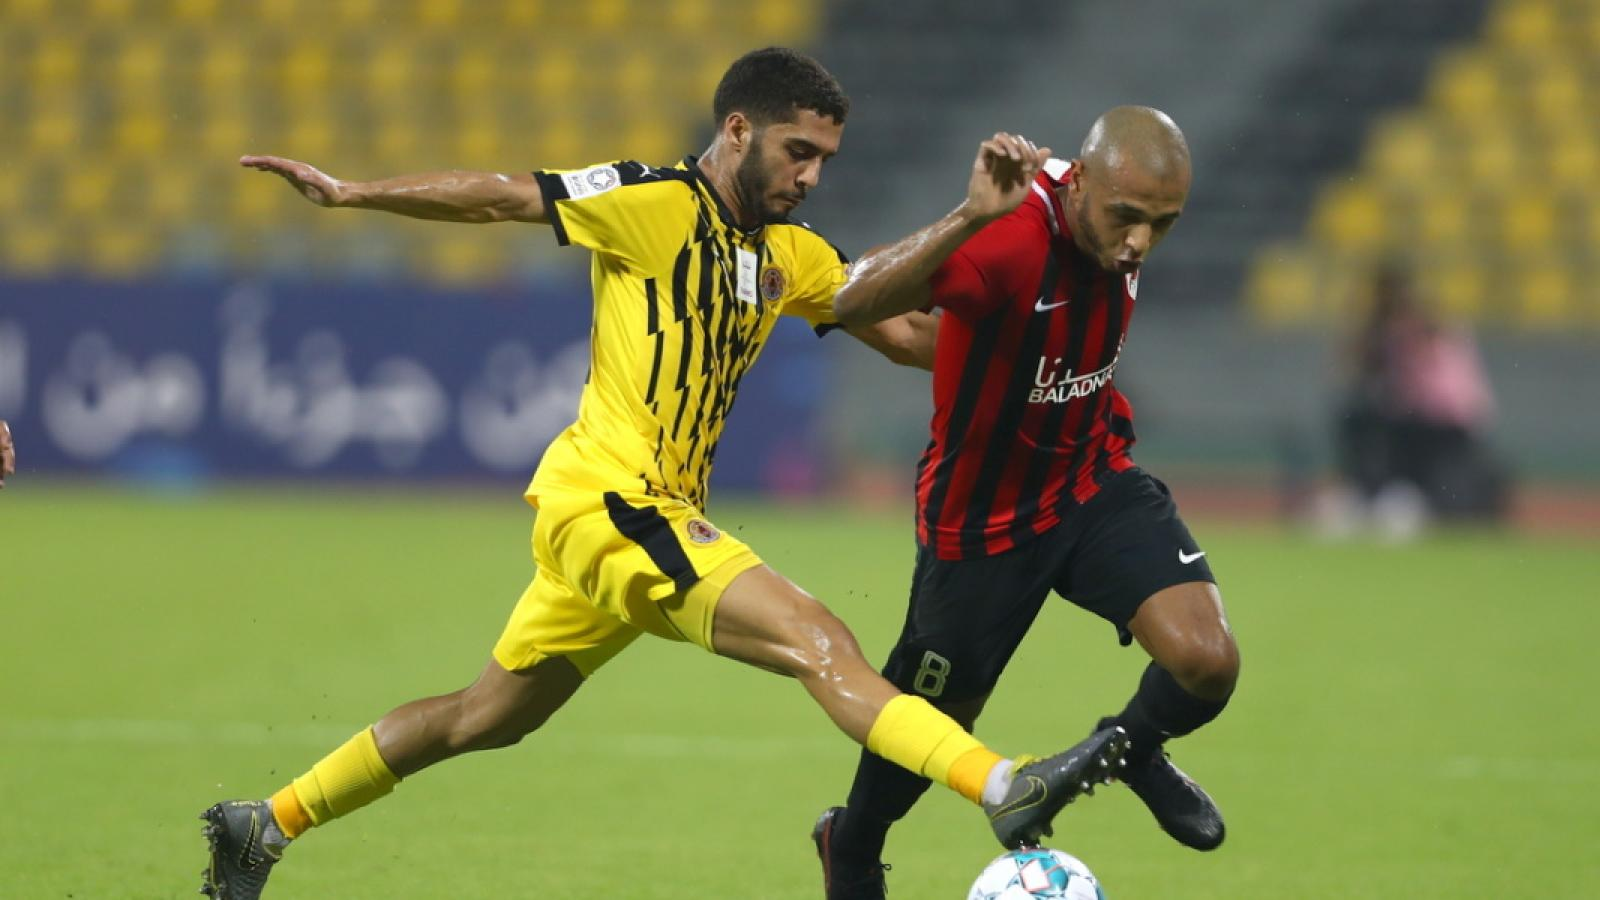 WATCH: QNB Stars League - Week 3 highlights